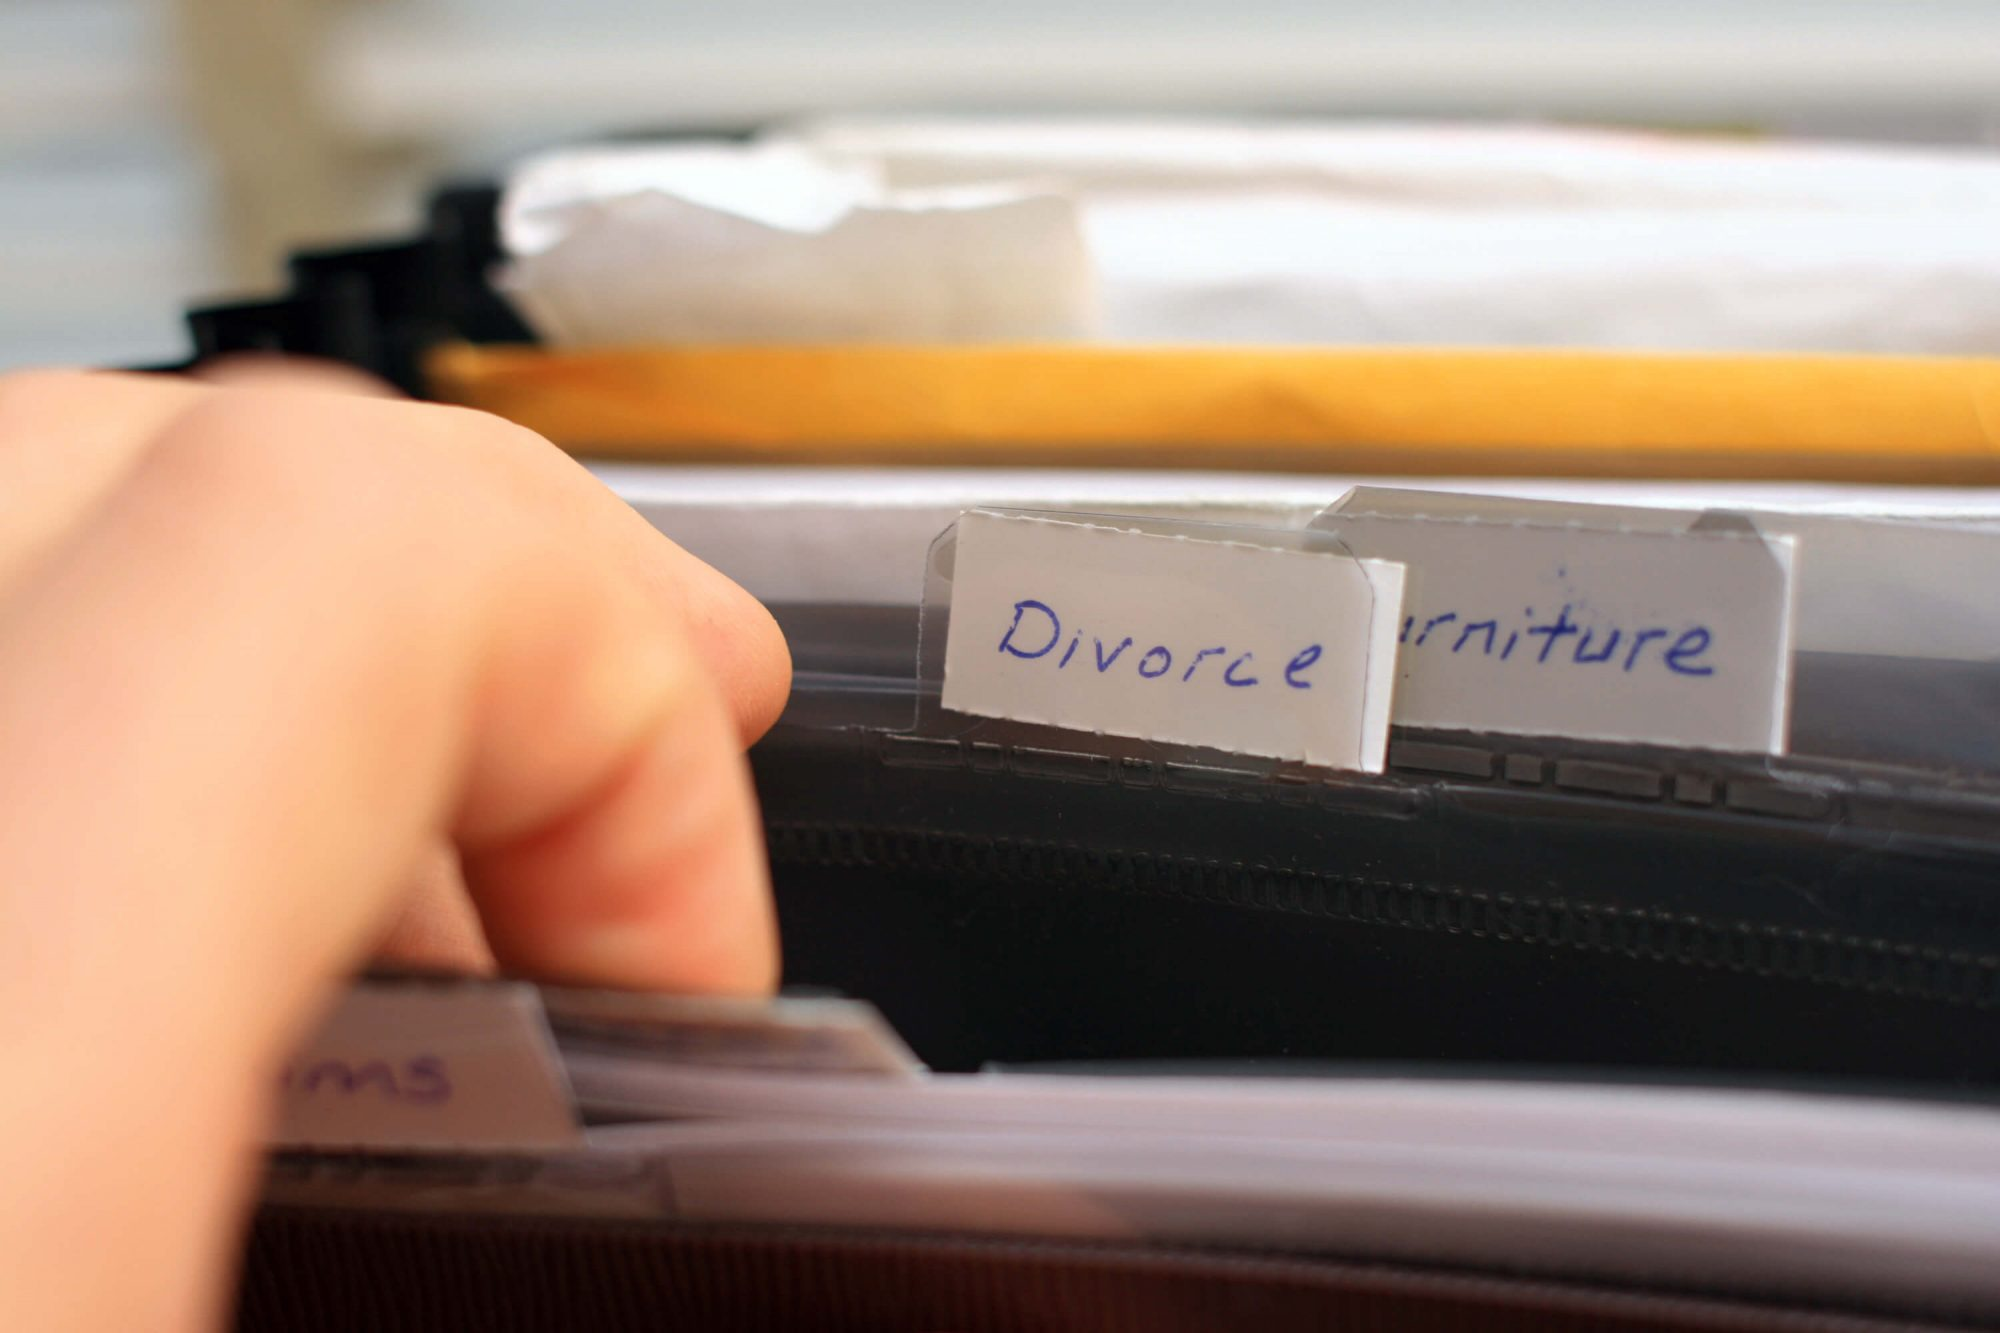 Goodman Law Firm discusses why a divorce file is necessary when filing for divorce.